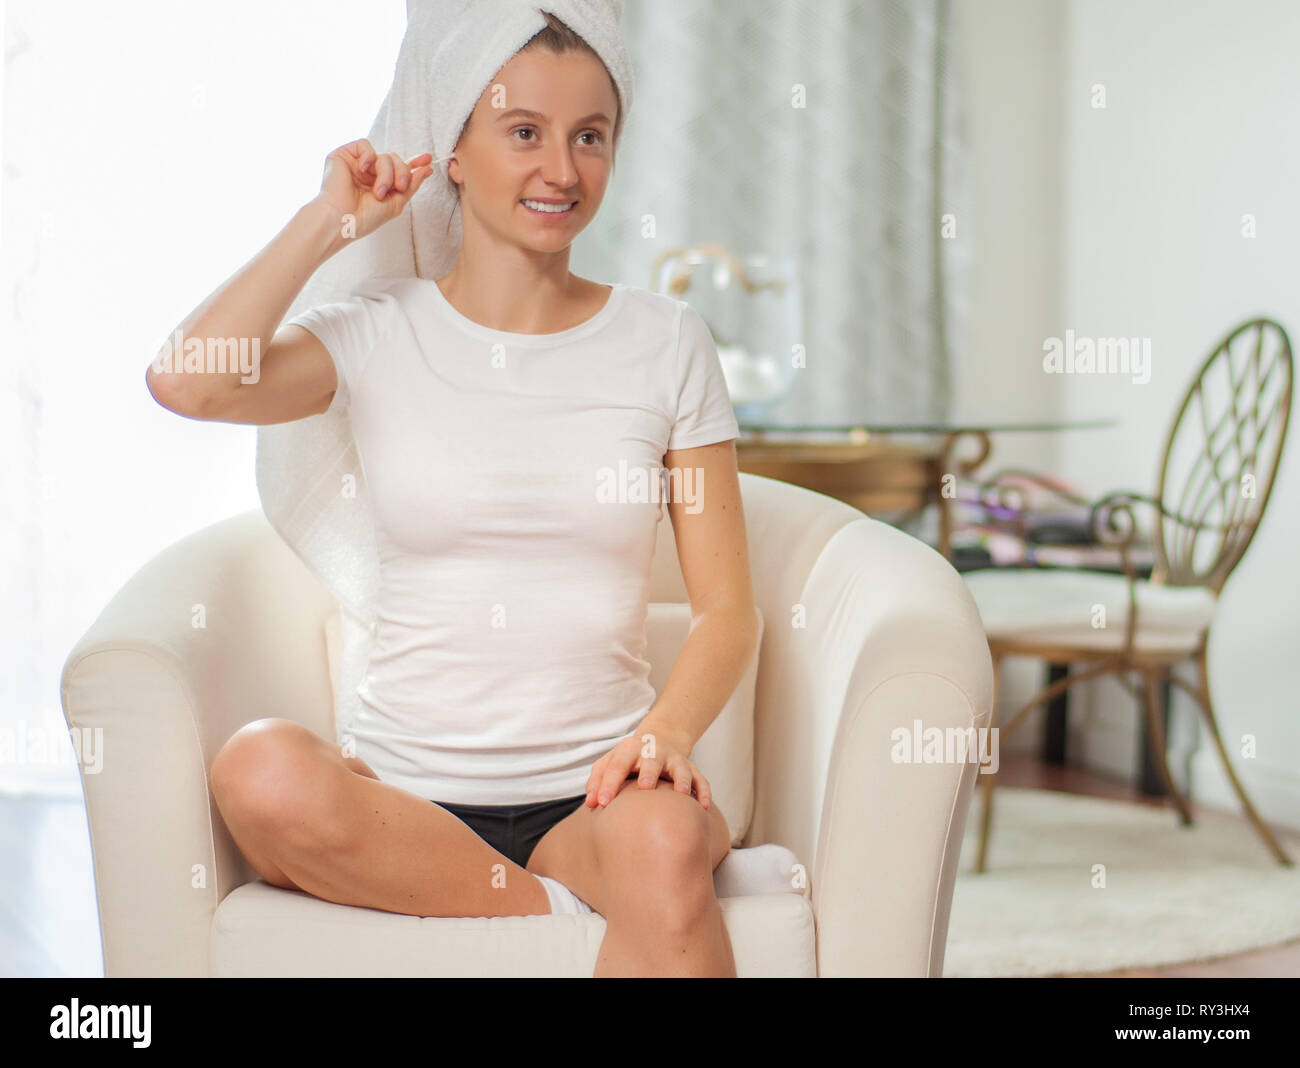 Young woman using a stick of cotton swab for ears cleaning. - Stock Image